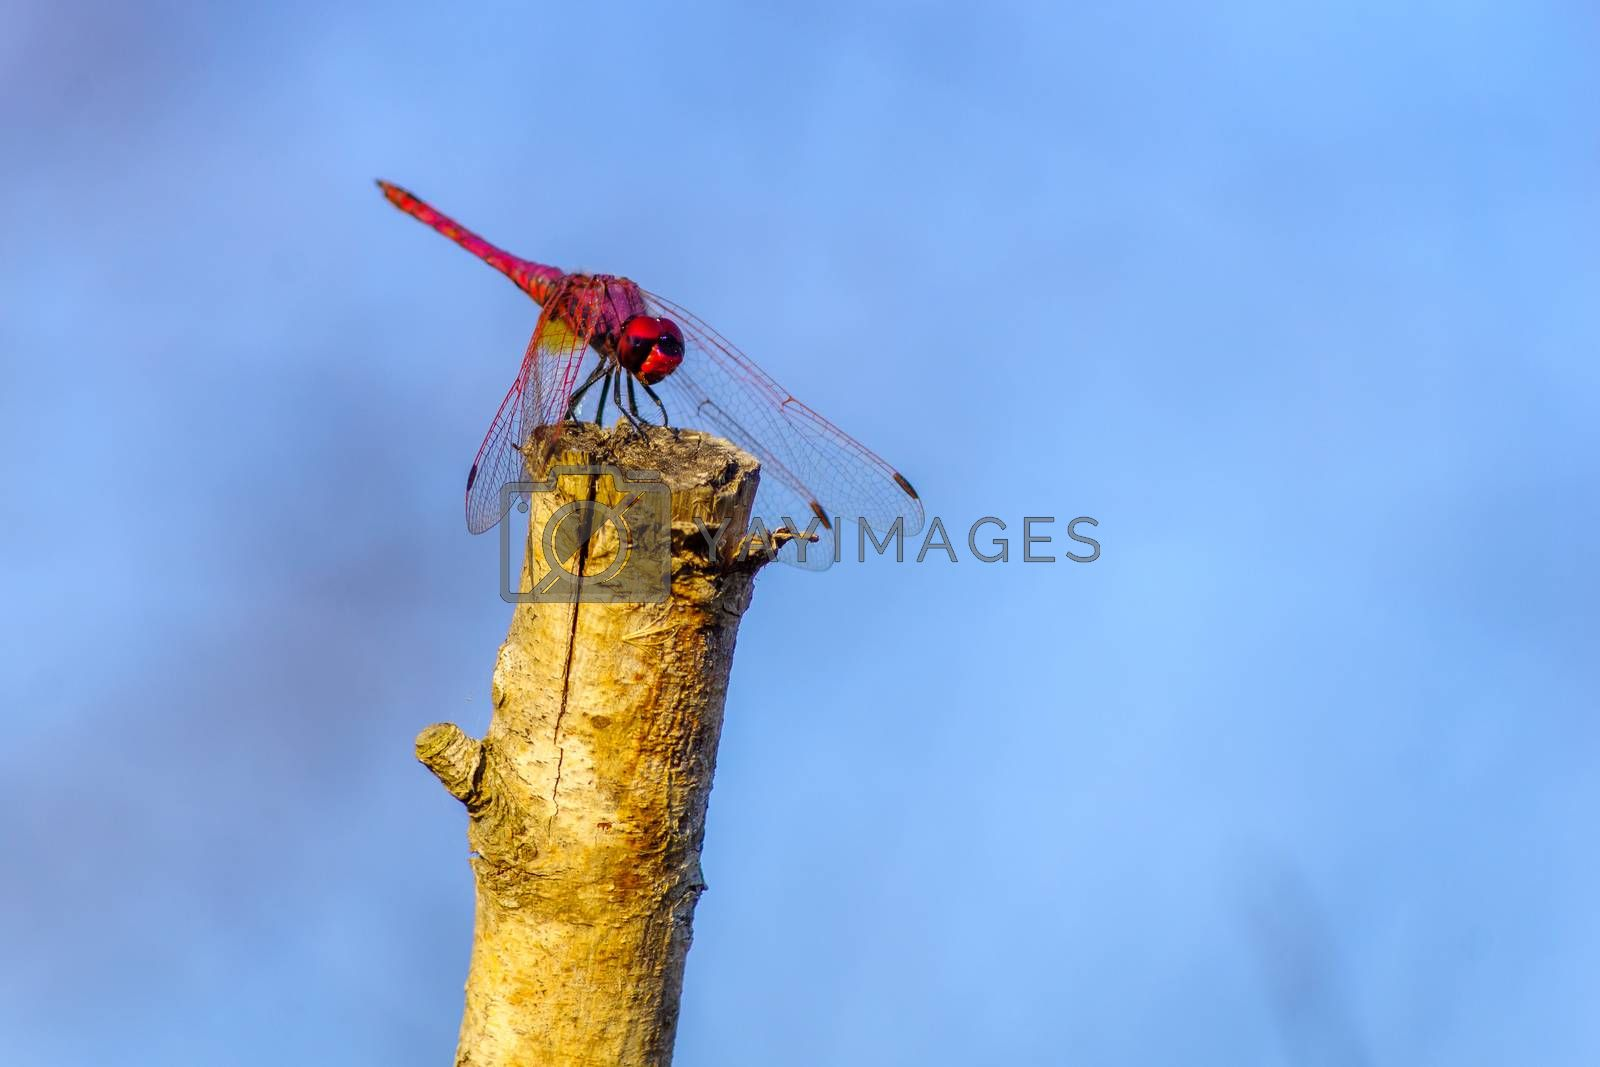 View of a red dragonfly on a tree branch